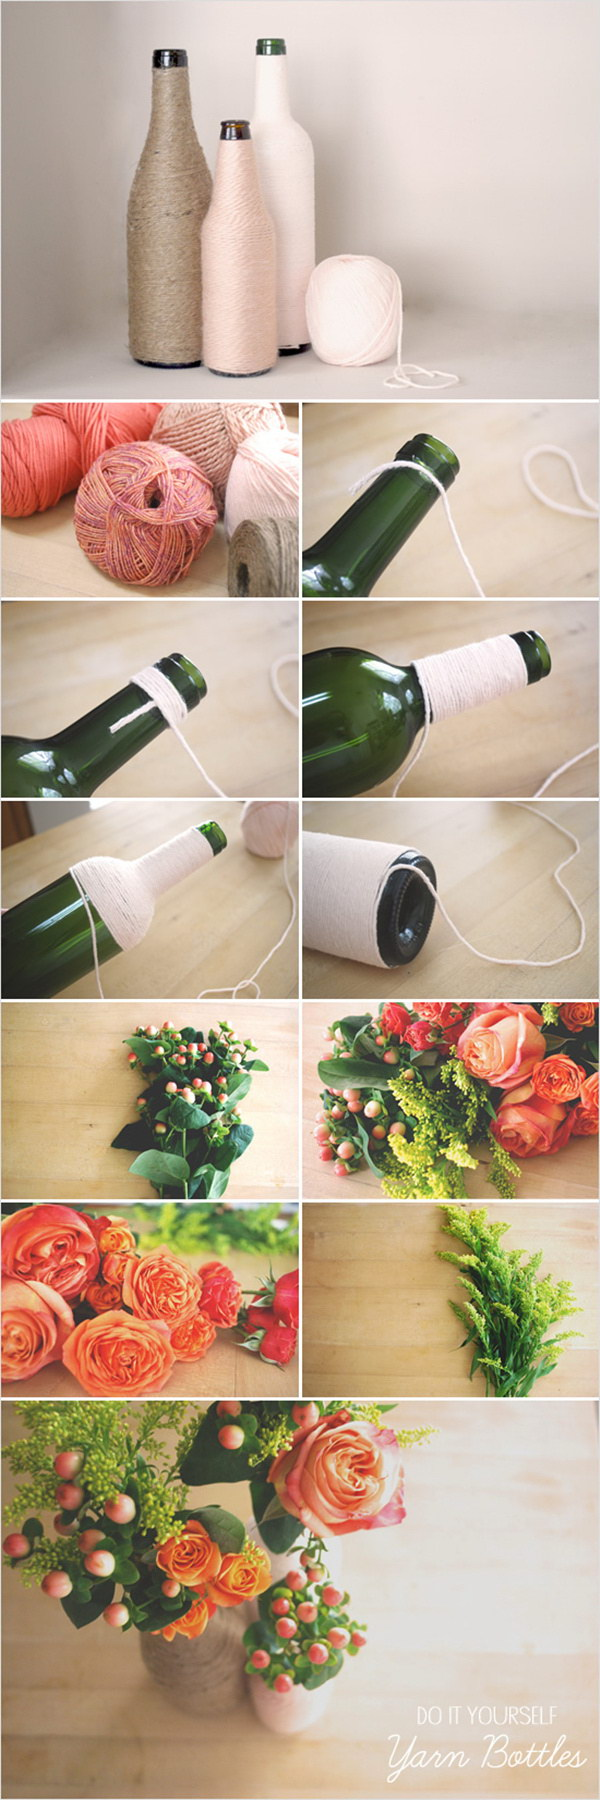 DIY Yarn Wrapped Bottles.